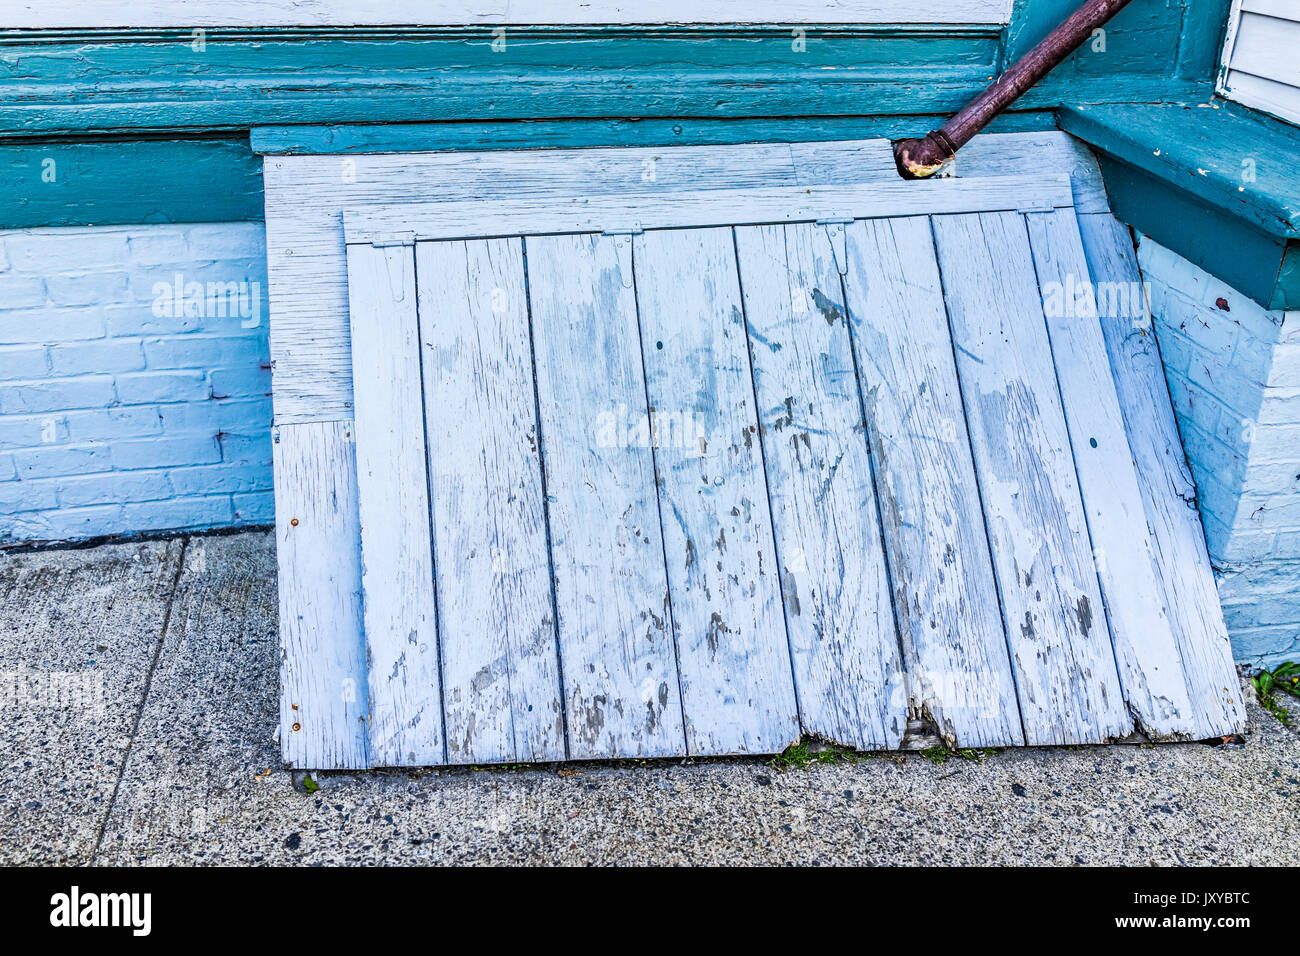 Wooden Back Door Stock Photos Images Alamy Framed Doors Over Fuse Box Blue Antique To Basement Entrance Of House In Downtown By Street Image